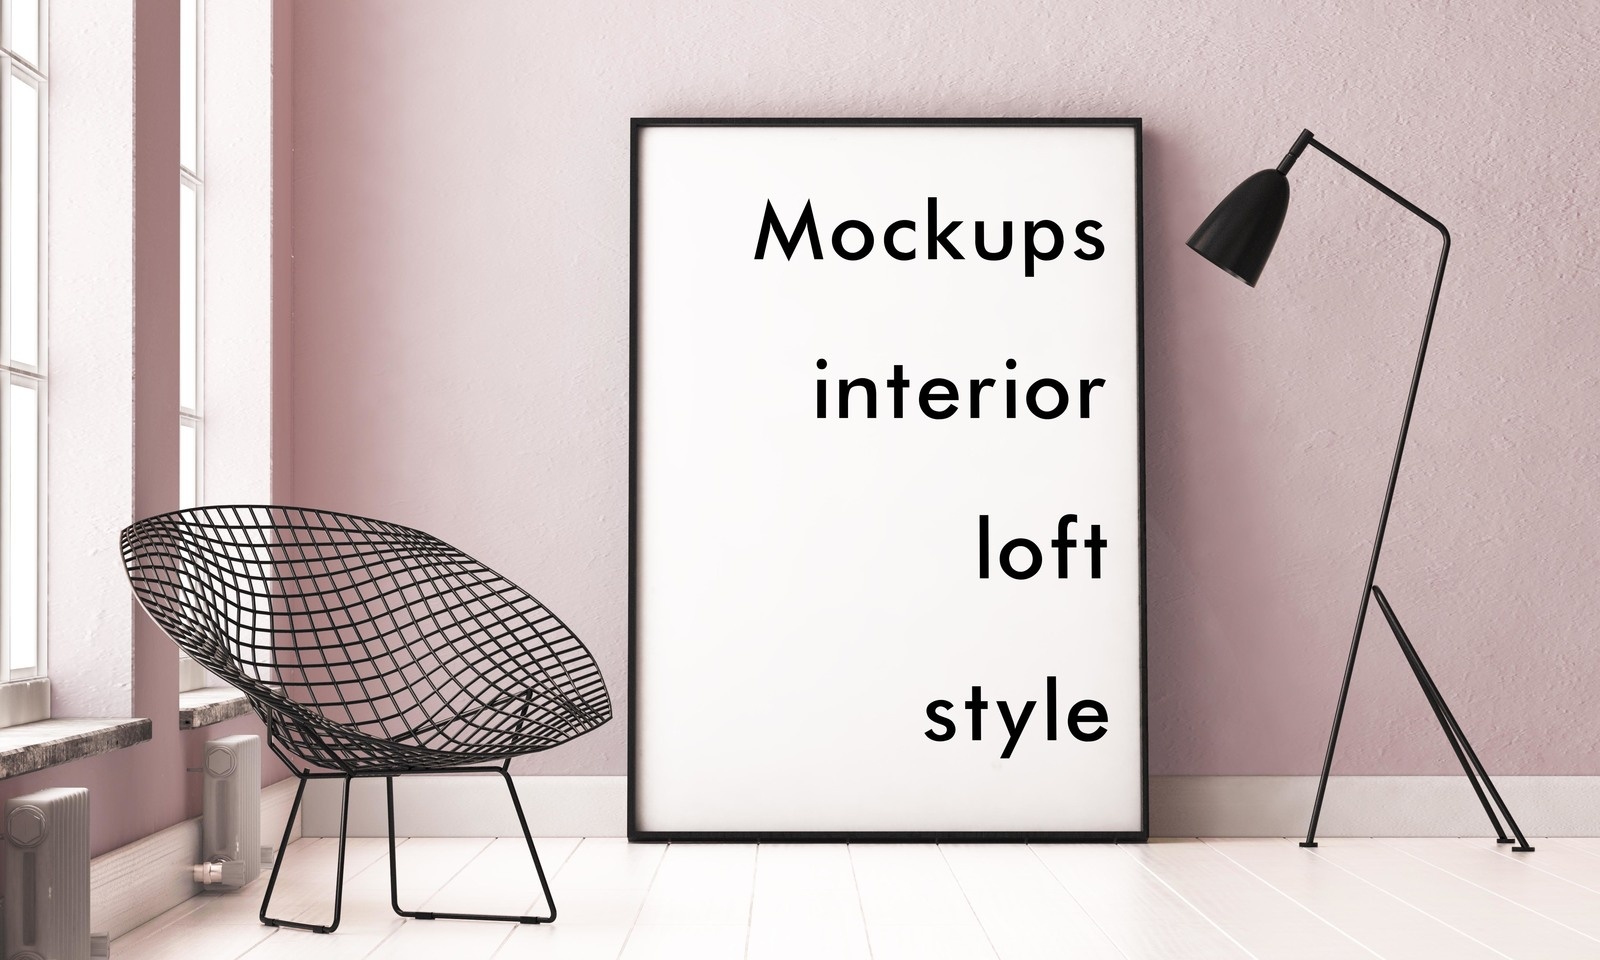 4 Mockups Interior Loft Style In Outdoor Advertising Mockups On